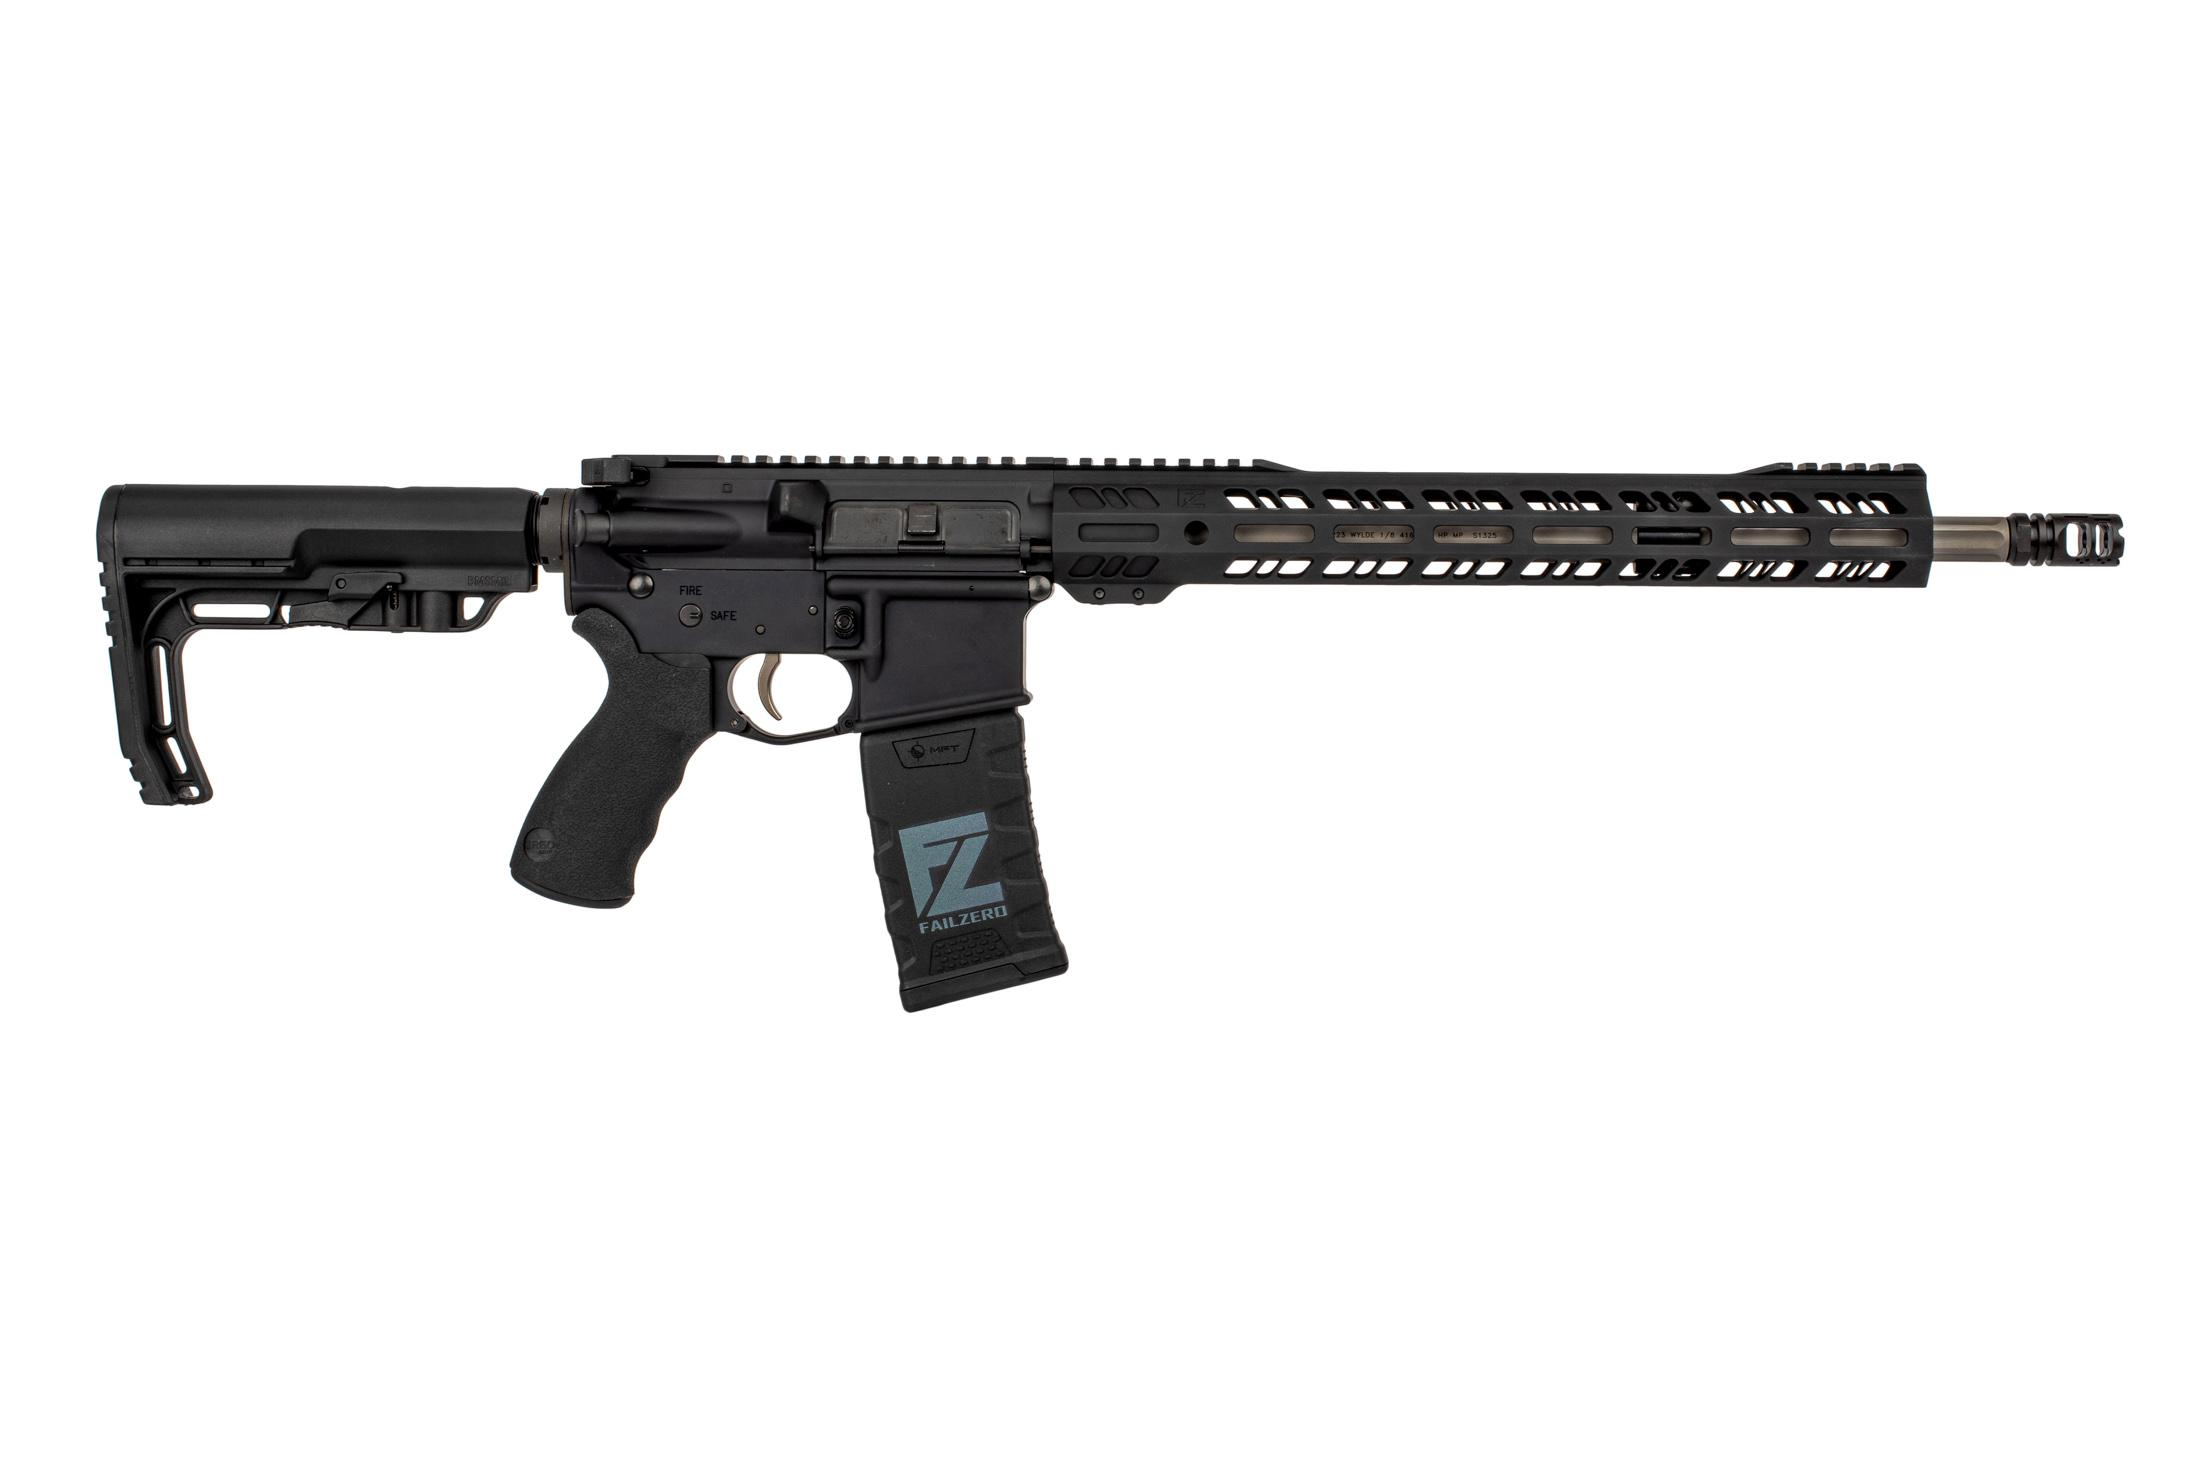 FailZero Elite AR15 rifle is chambered in 223 wylde with a 16 inch fluted barrel